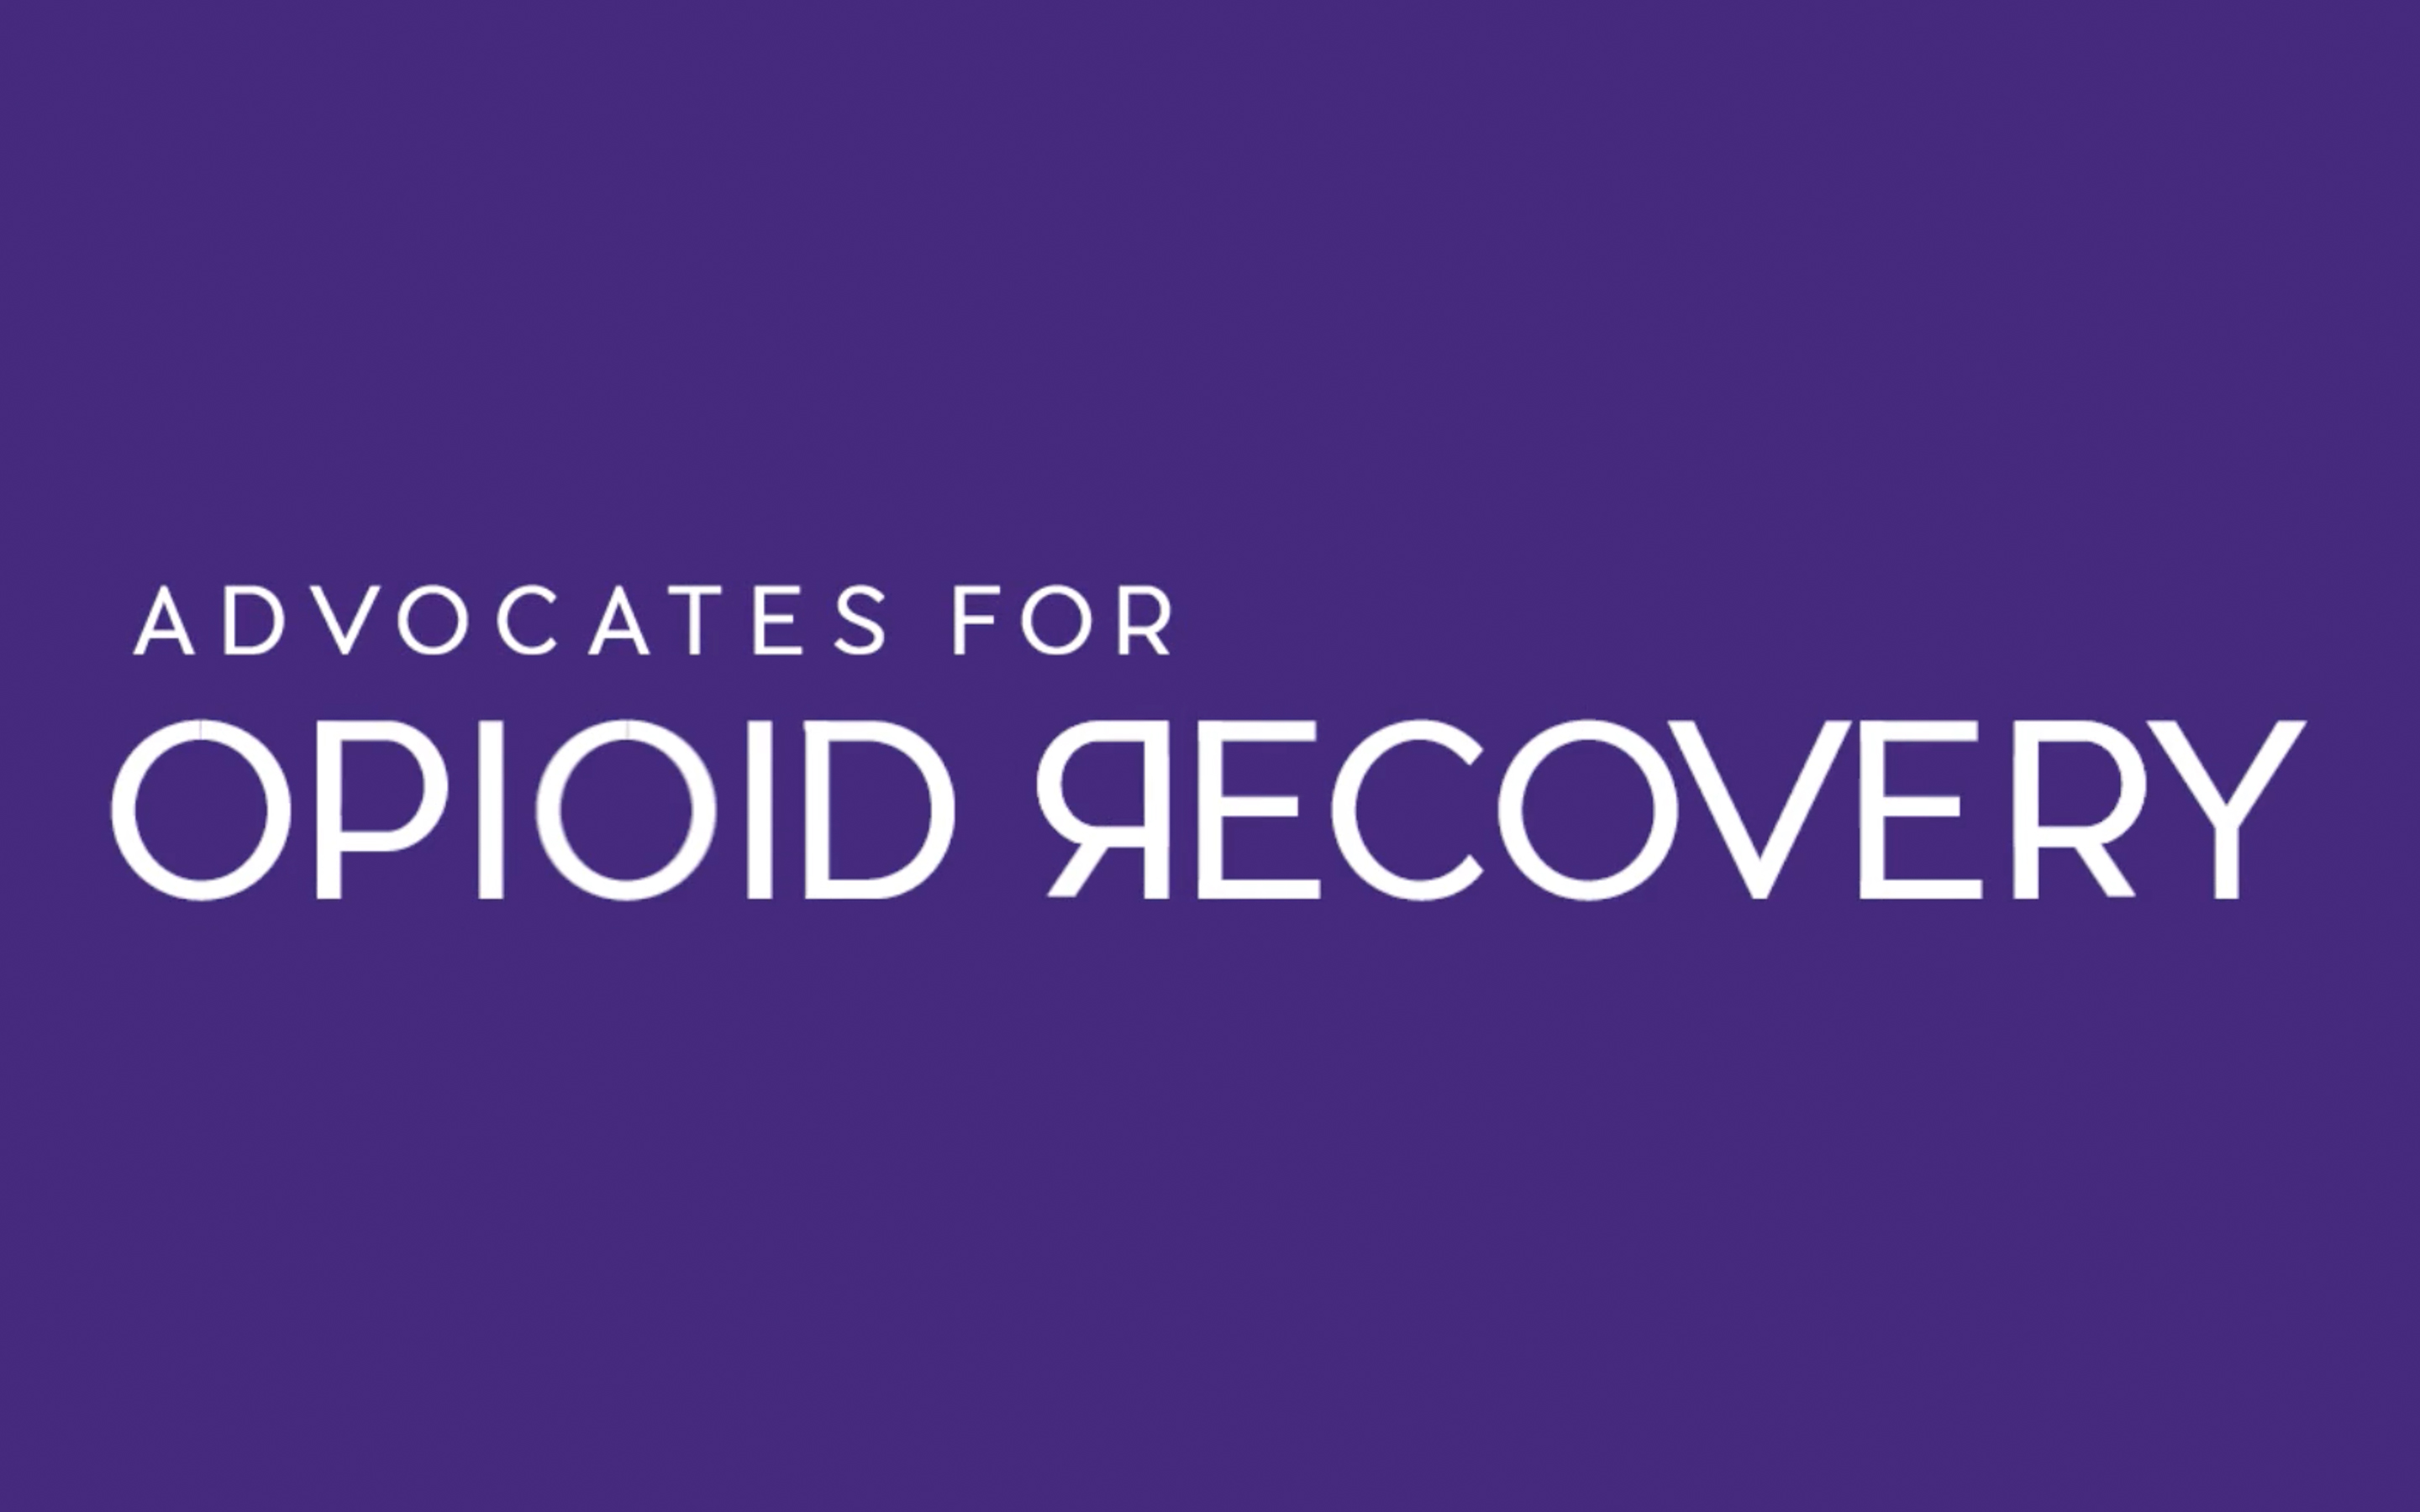 Advocates for Opioid Recovery